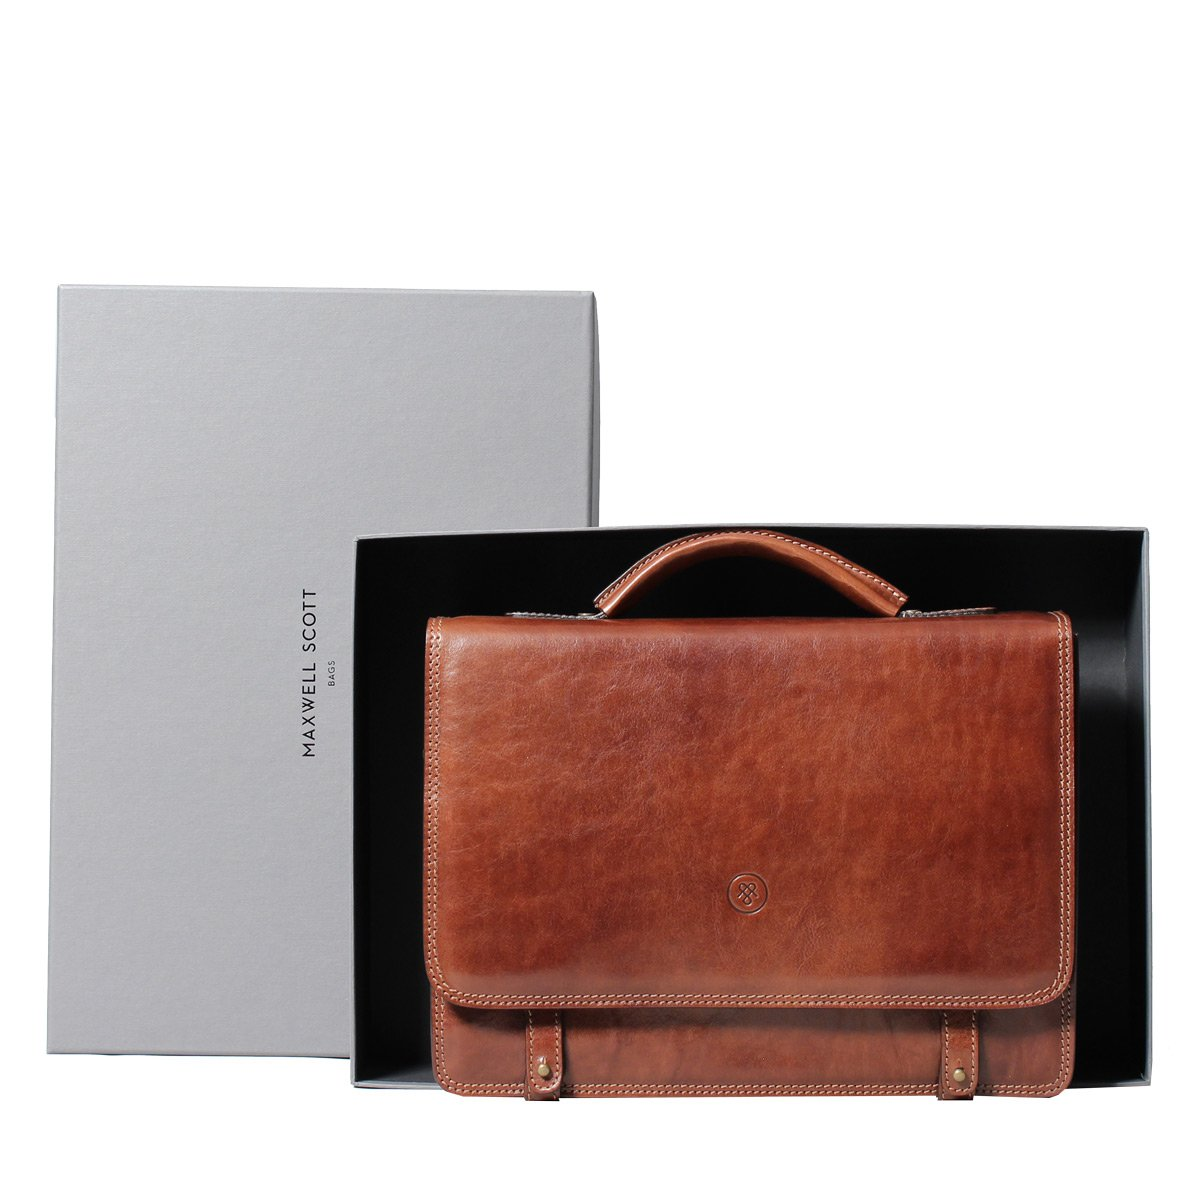 Maxwell Scott Personalized Luxury Tan Mens Leather Satchels (The Battista) - One Size by Maxwell Scott Bags (Image #8)